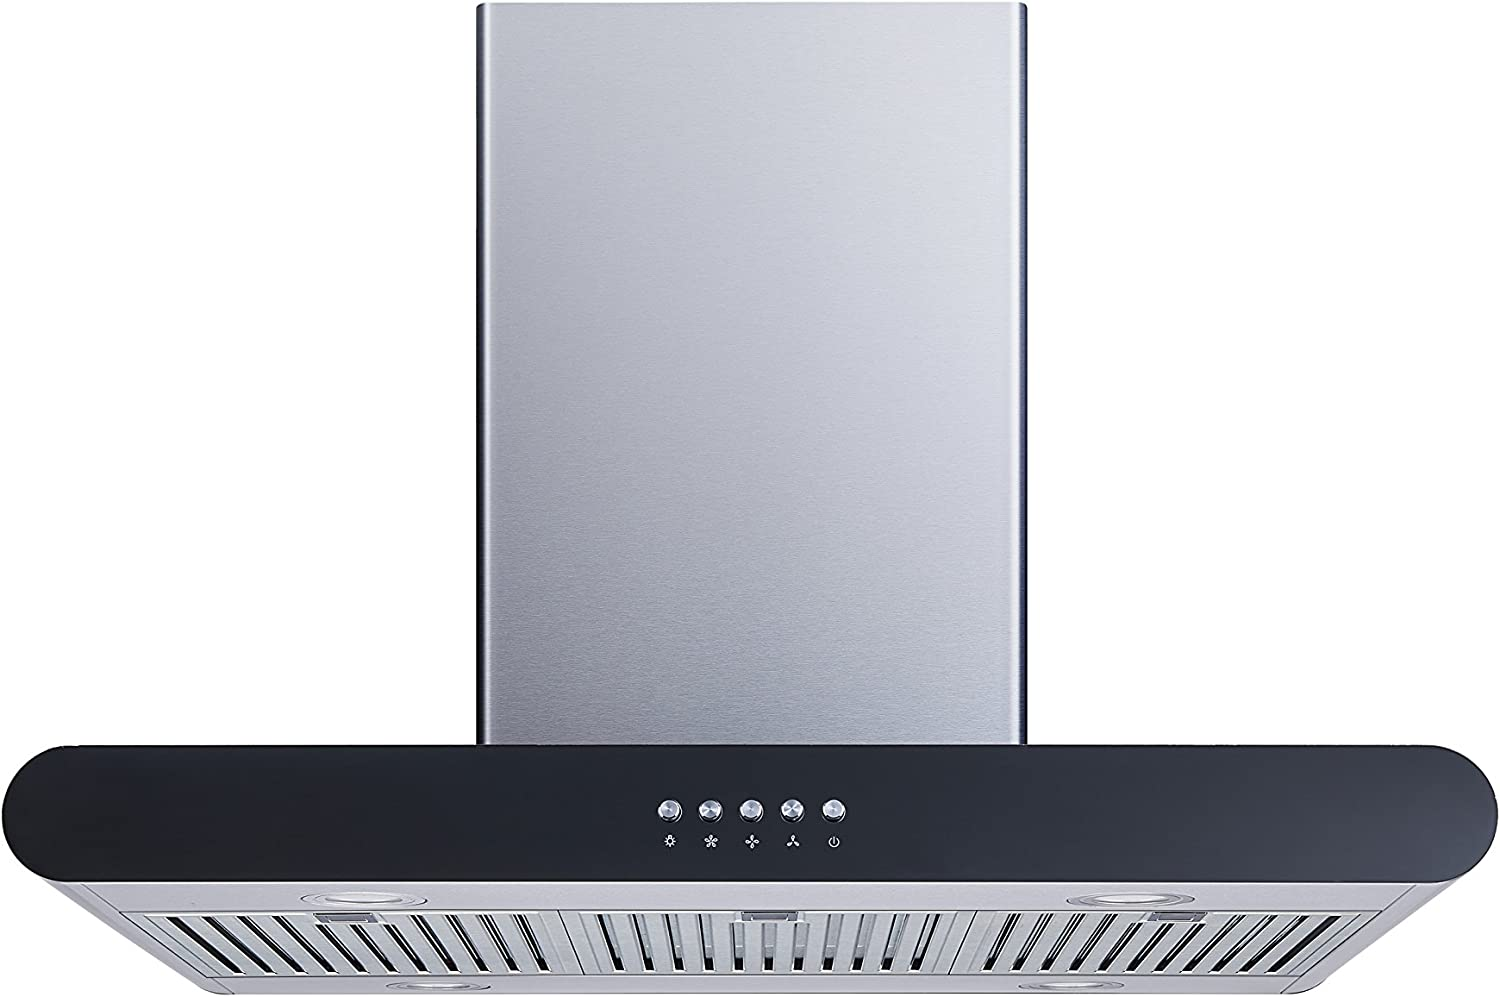 Winflo 30 In. Convertible Stainless Steel Island Range Hood with Stainless Steel Baffle Filters and Push Button Control